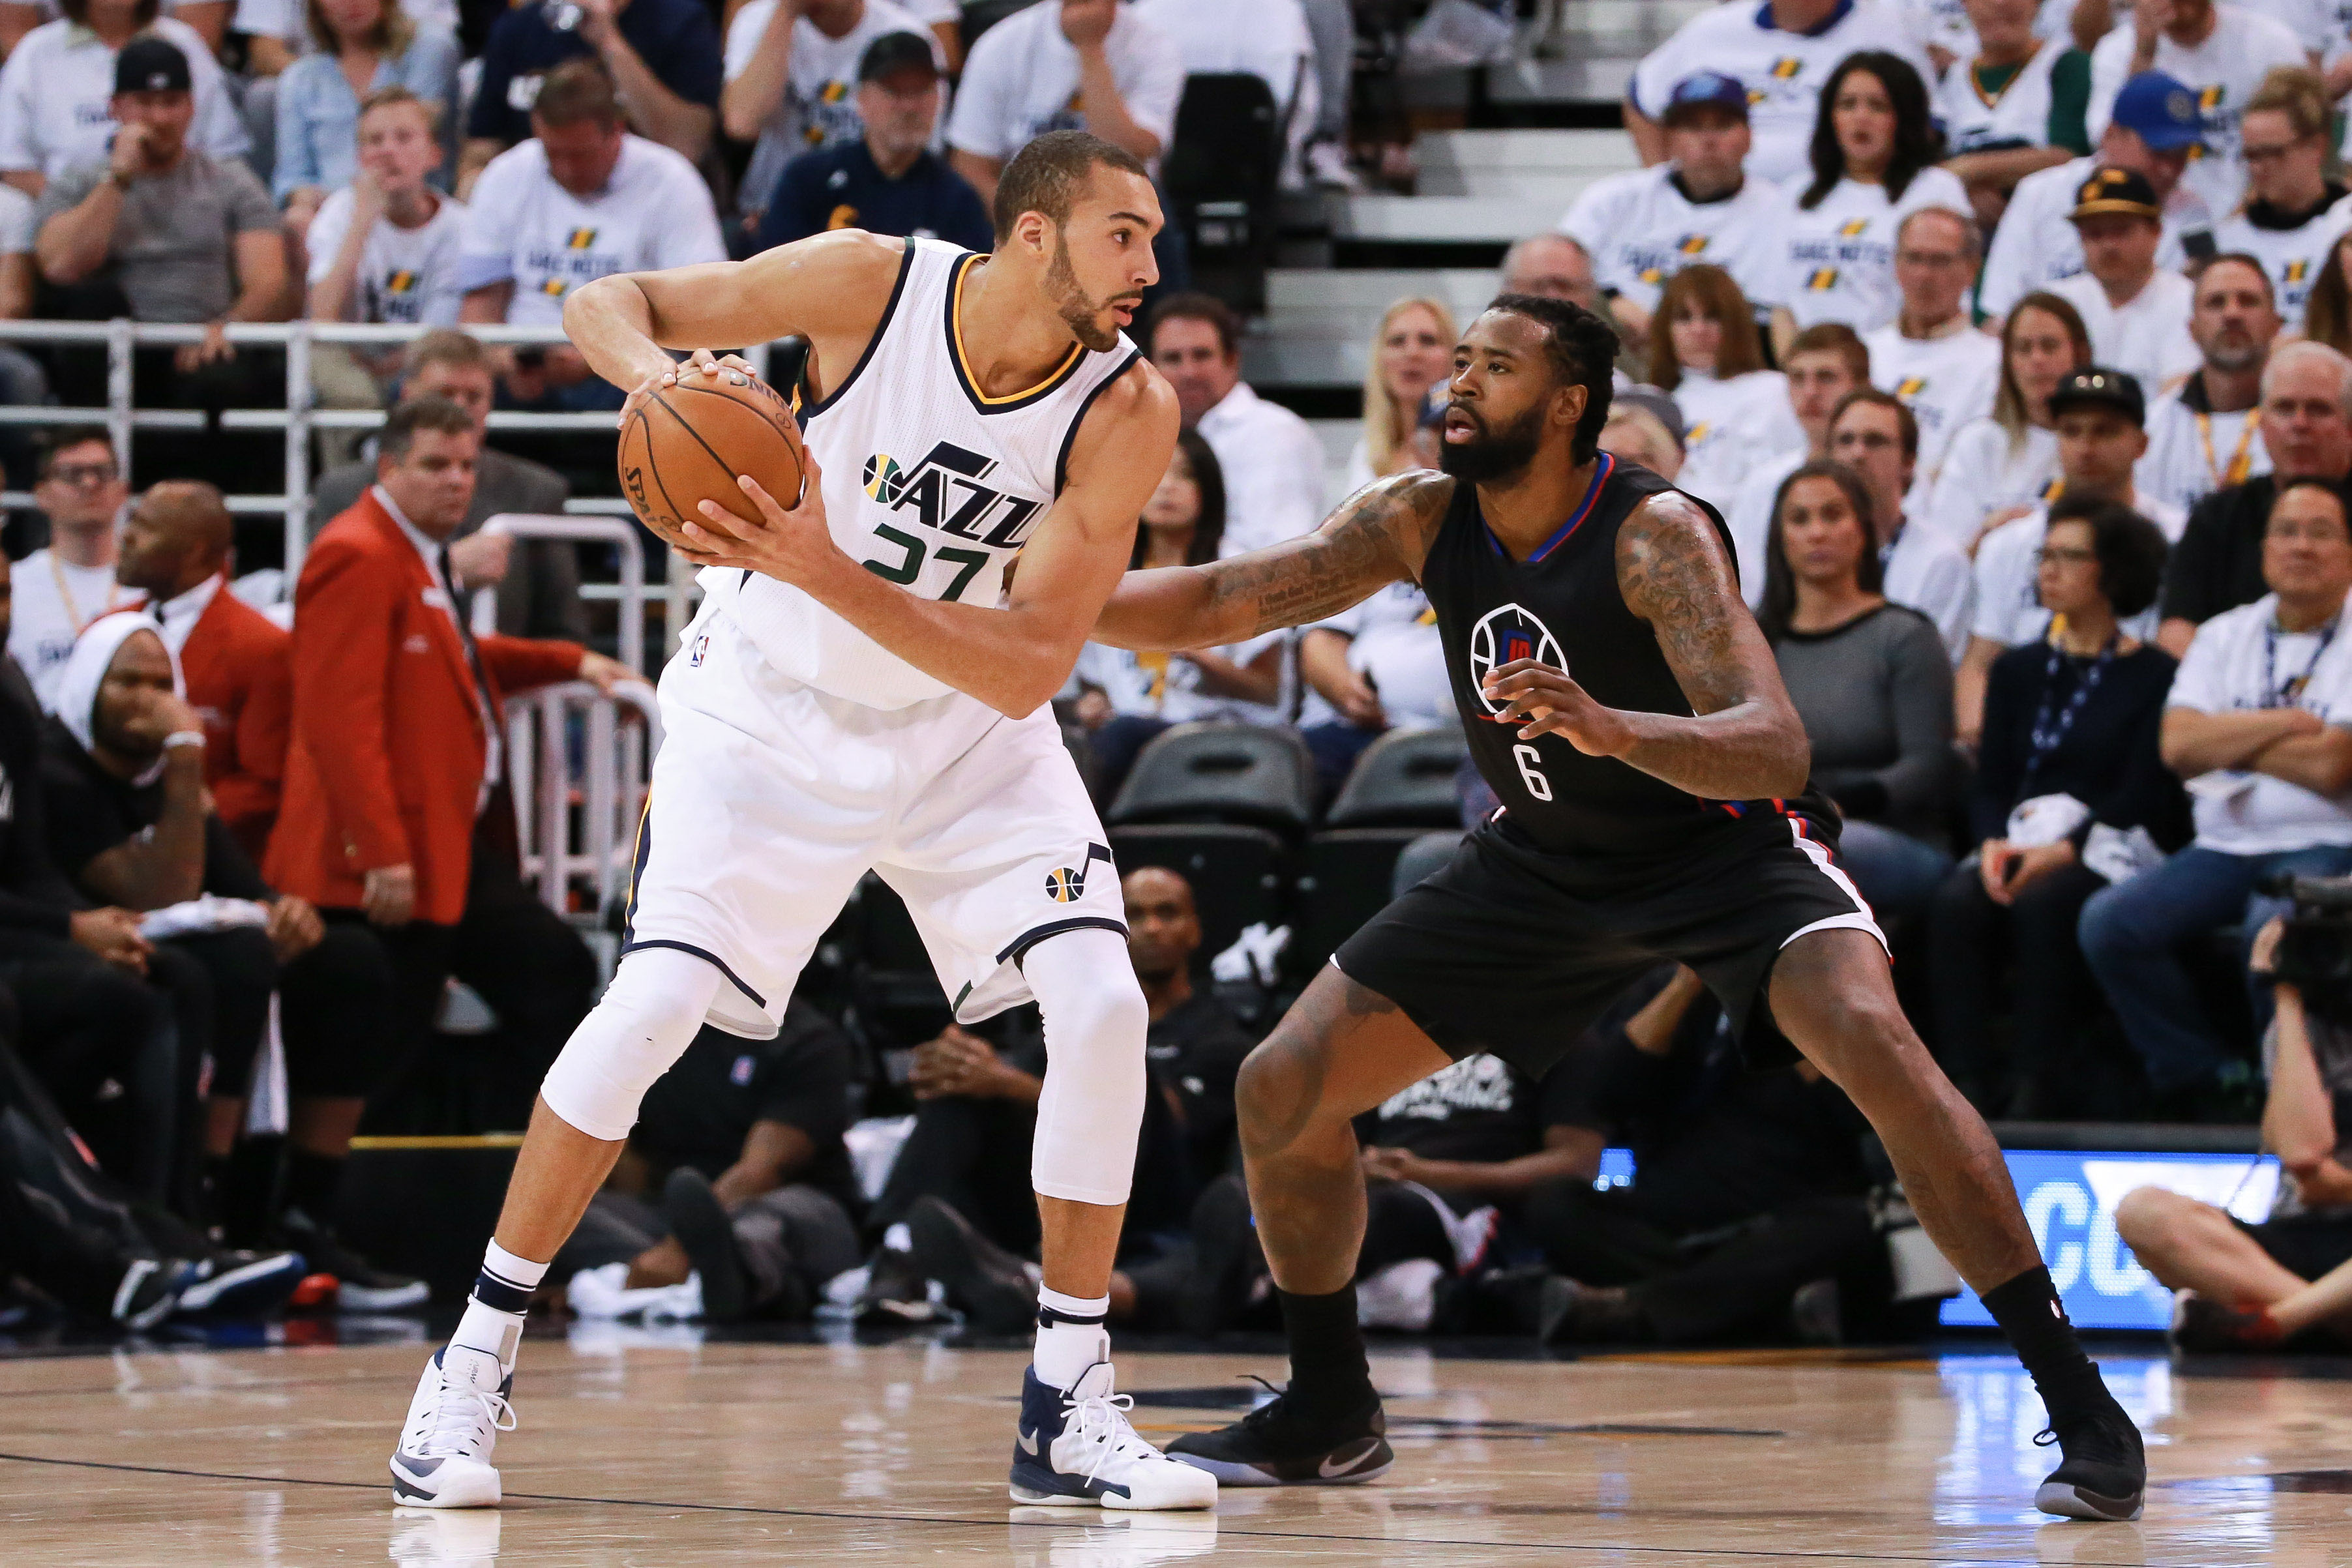 10028606-nba-playoffs-los-angeles-clippers-at-utah-jazz